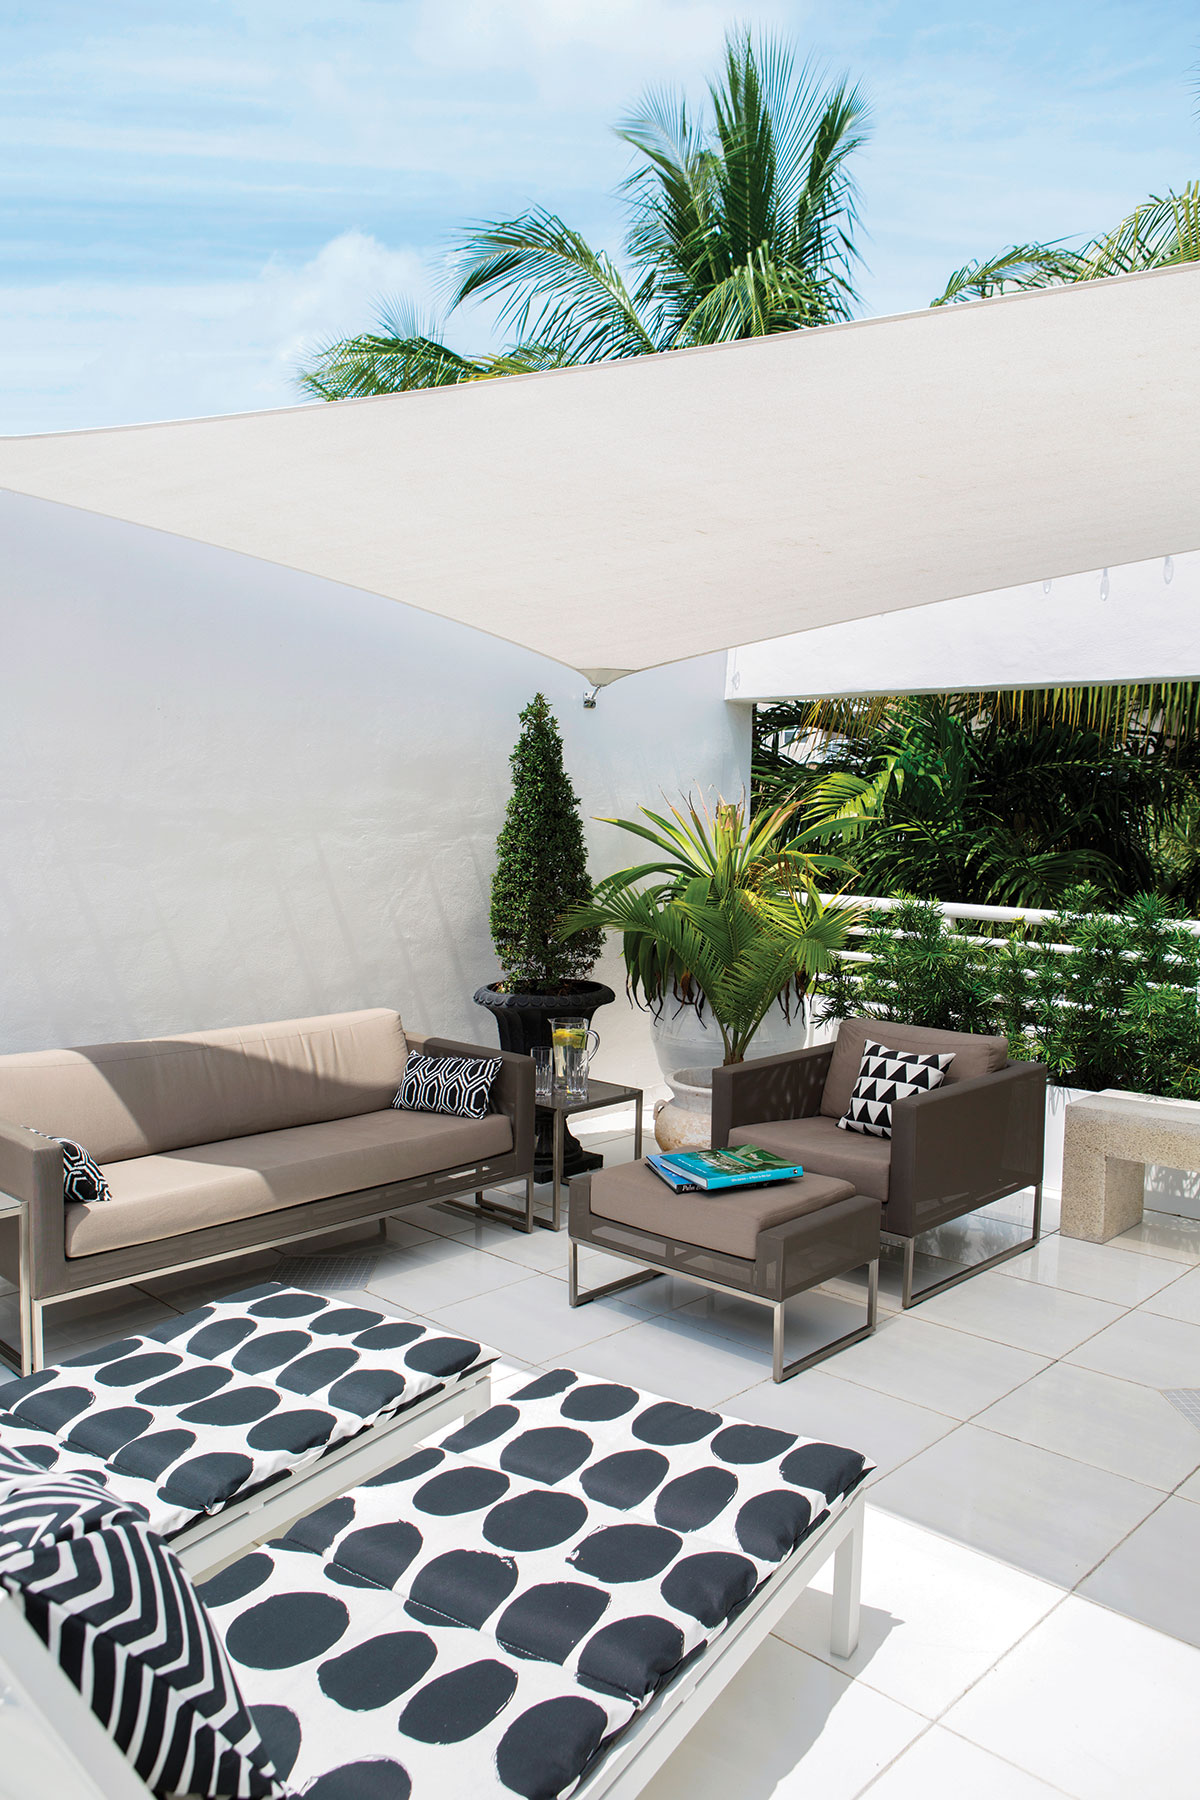 Bolder in execution, the third-floor terrace repeats the interior scheme. Crate & Barrel's sofa and armchair shape a social grouping, while the owners' chaise lounges recline nearby. Large flower pots and planters are olive jars Garger had shipped from Greece.